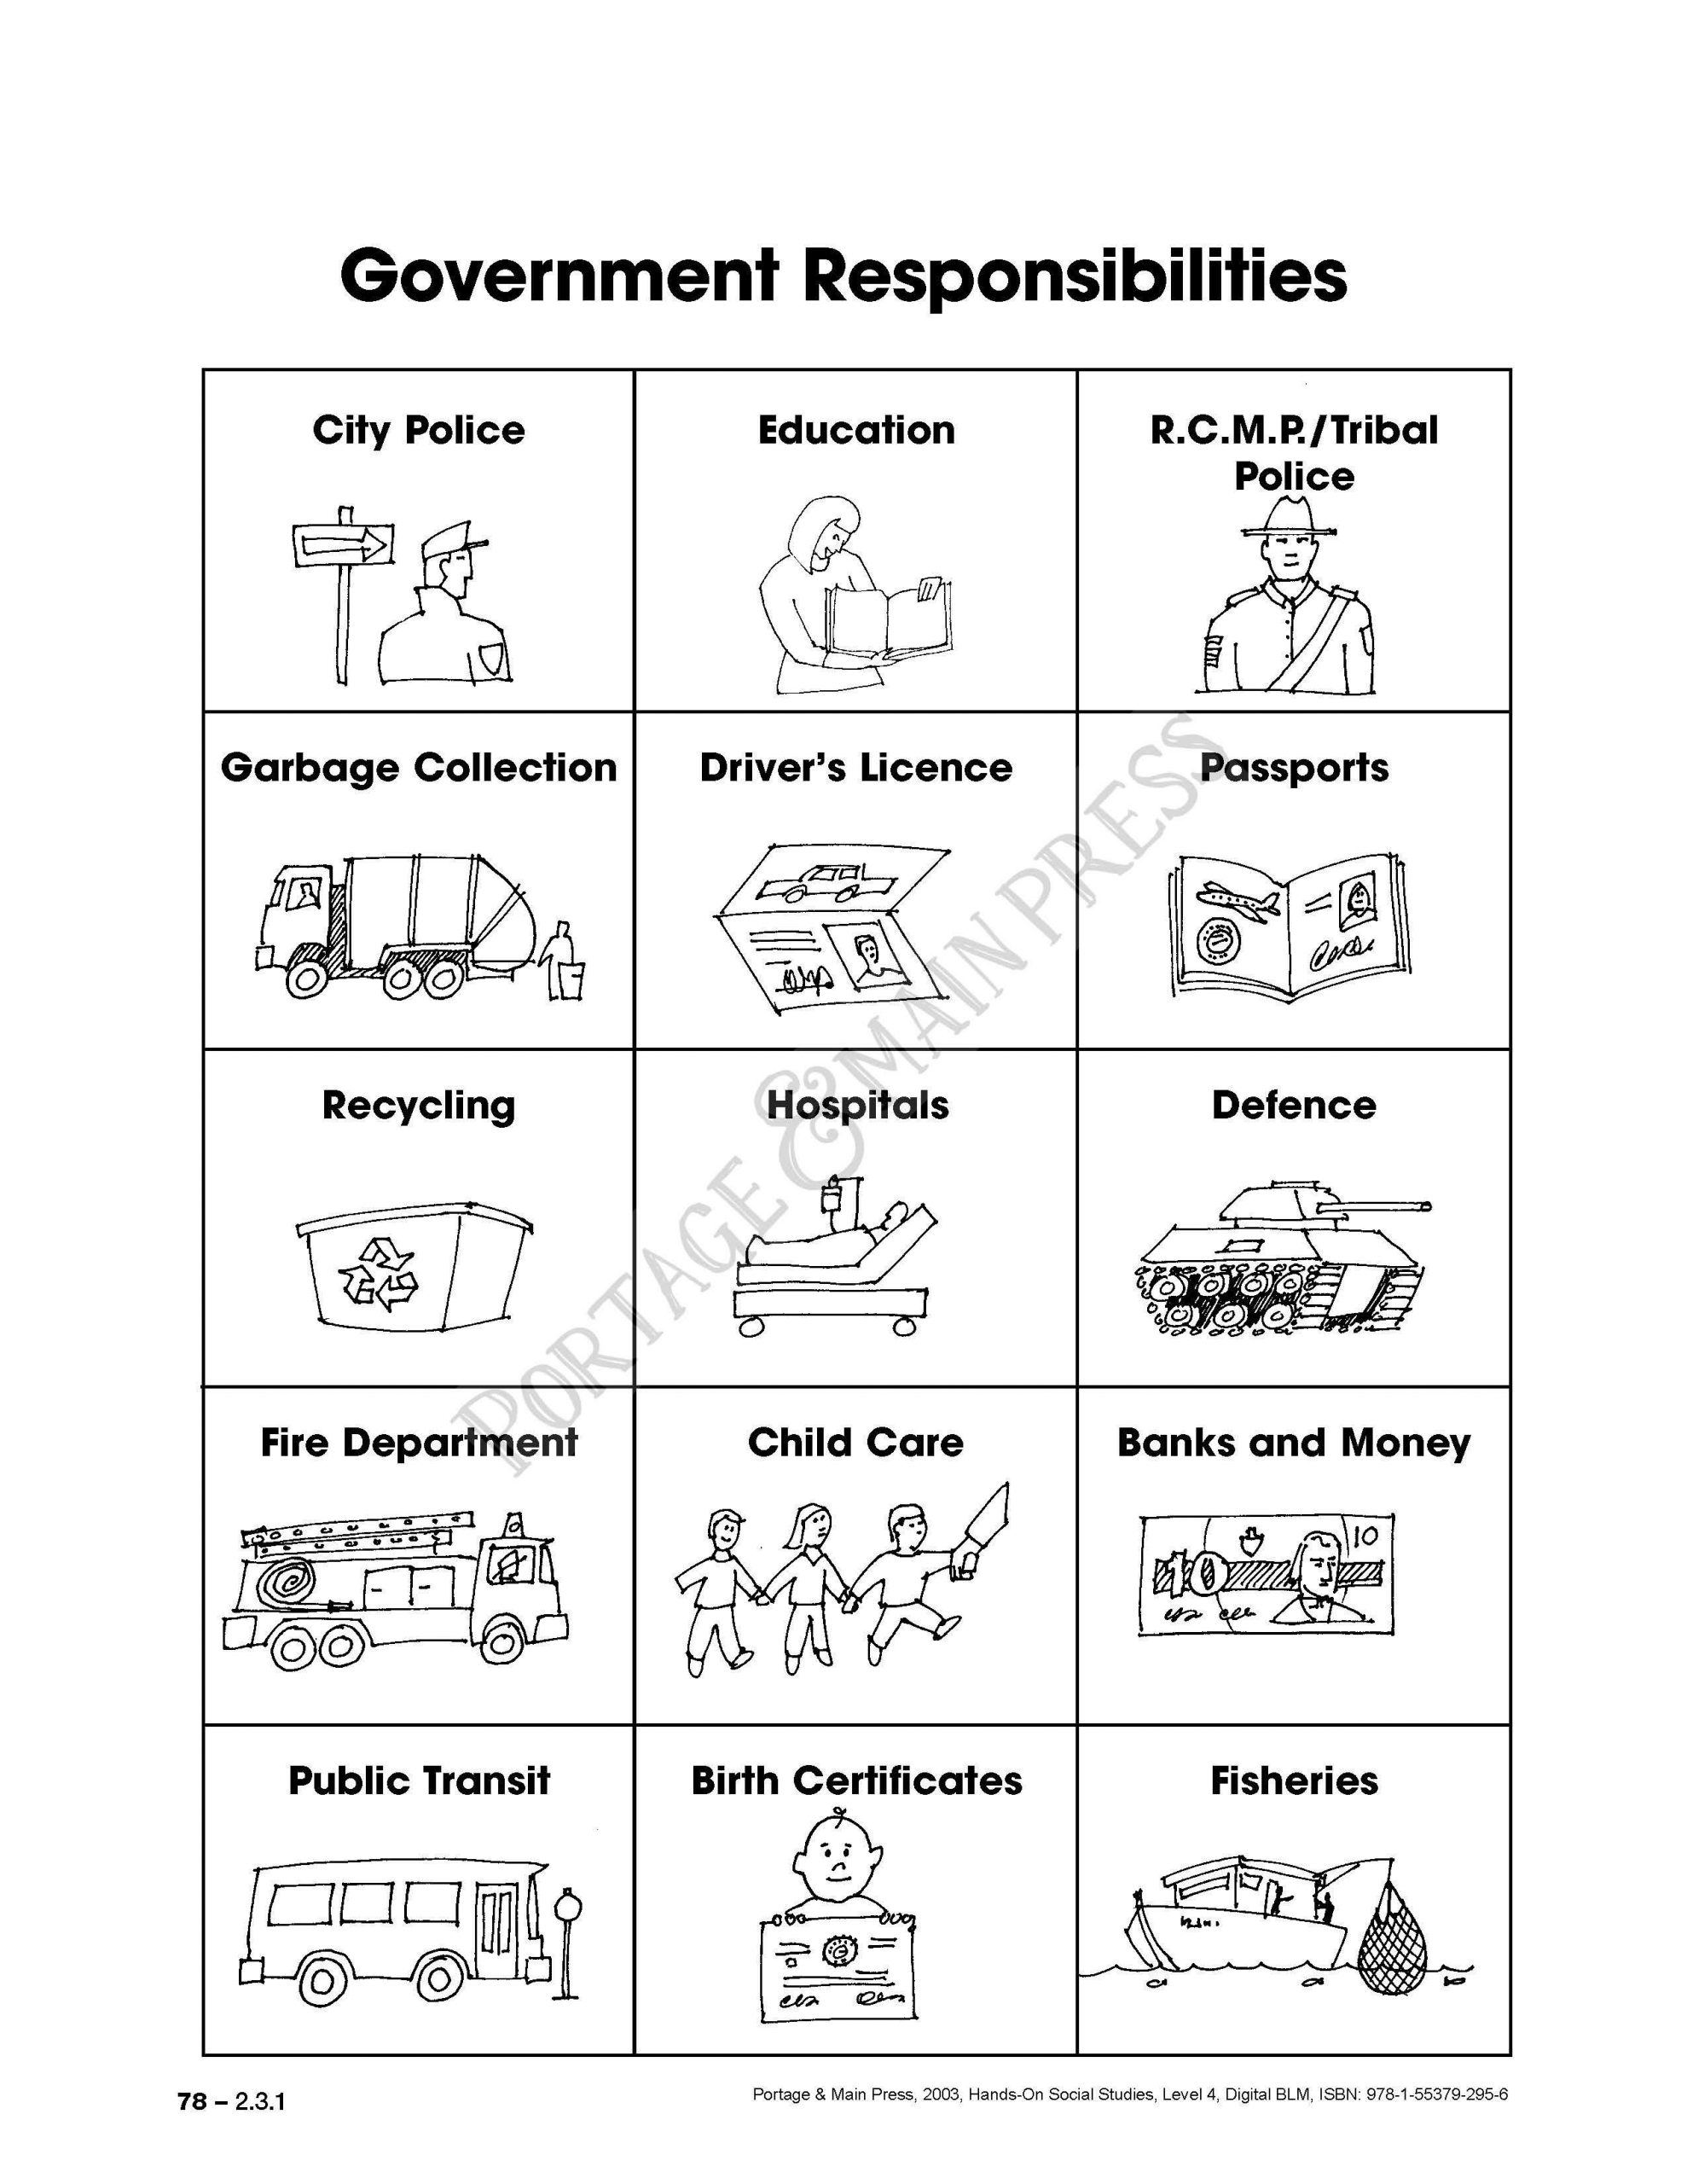 Branches Of Government Worksheet Pdf 3rd Grade social Stu S Worksheets Government